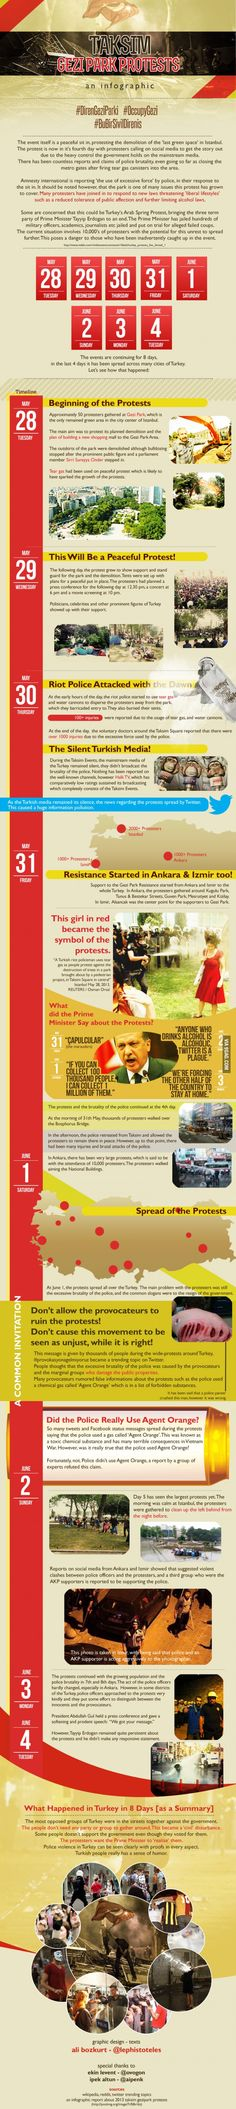 Infographic on events in Turkey! #occupygezi #flamasizgezi #gezi